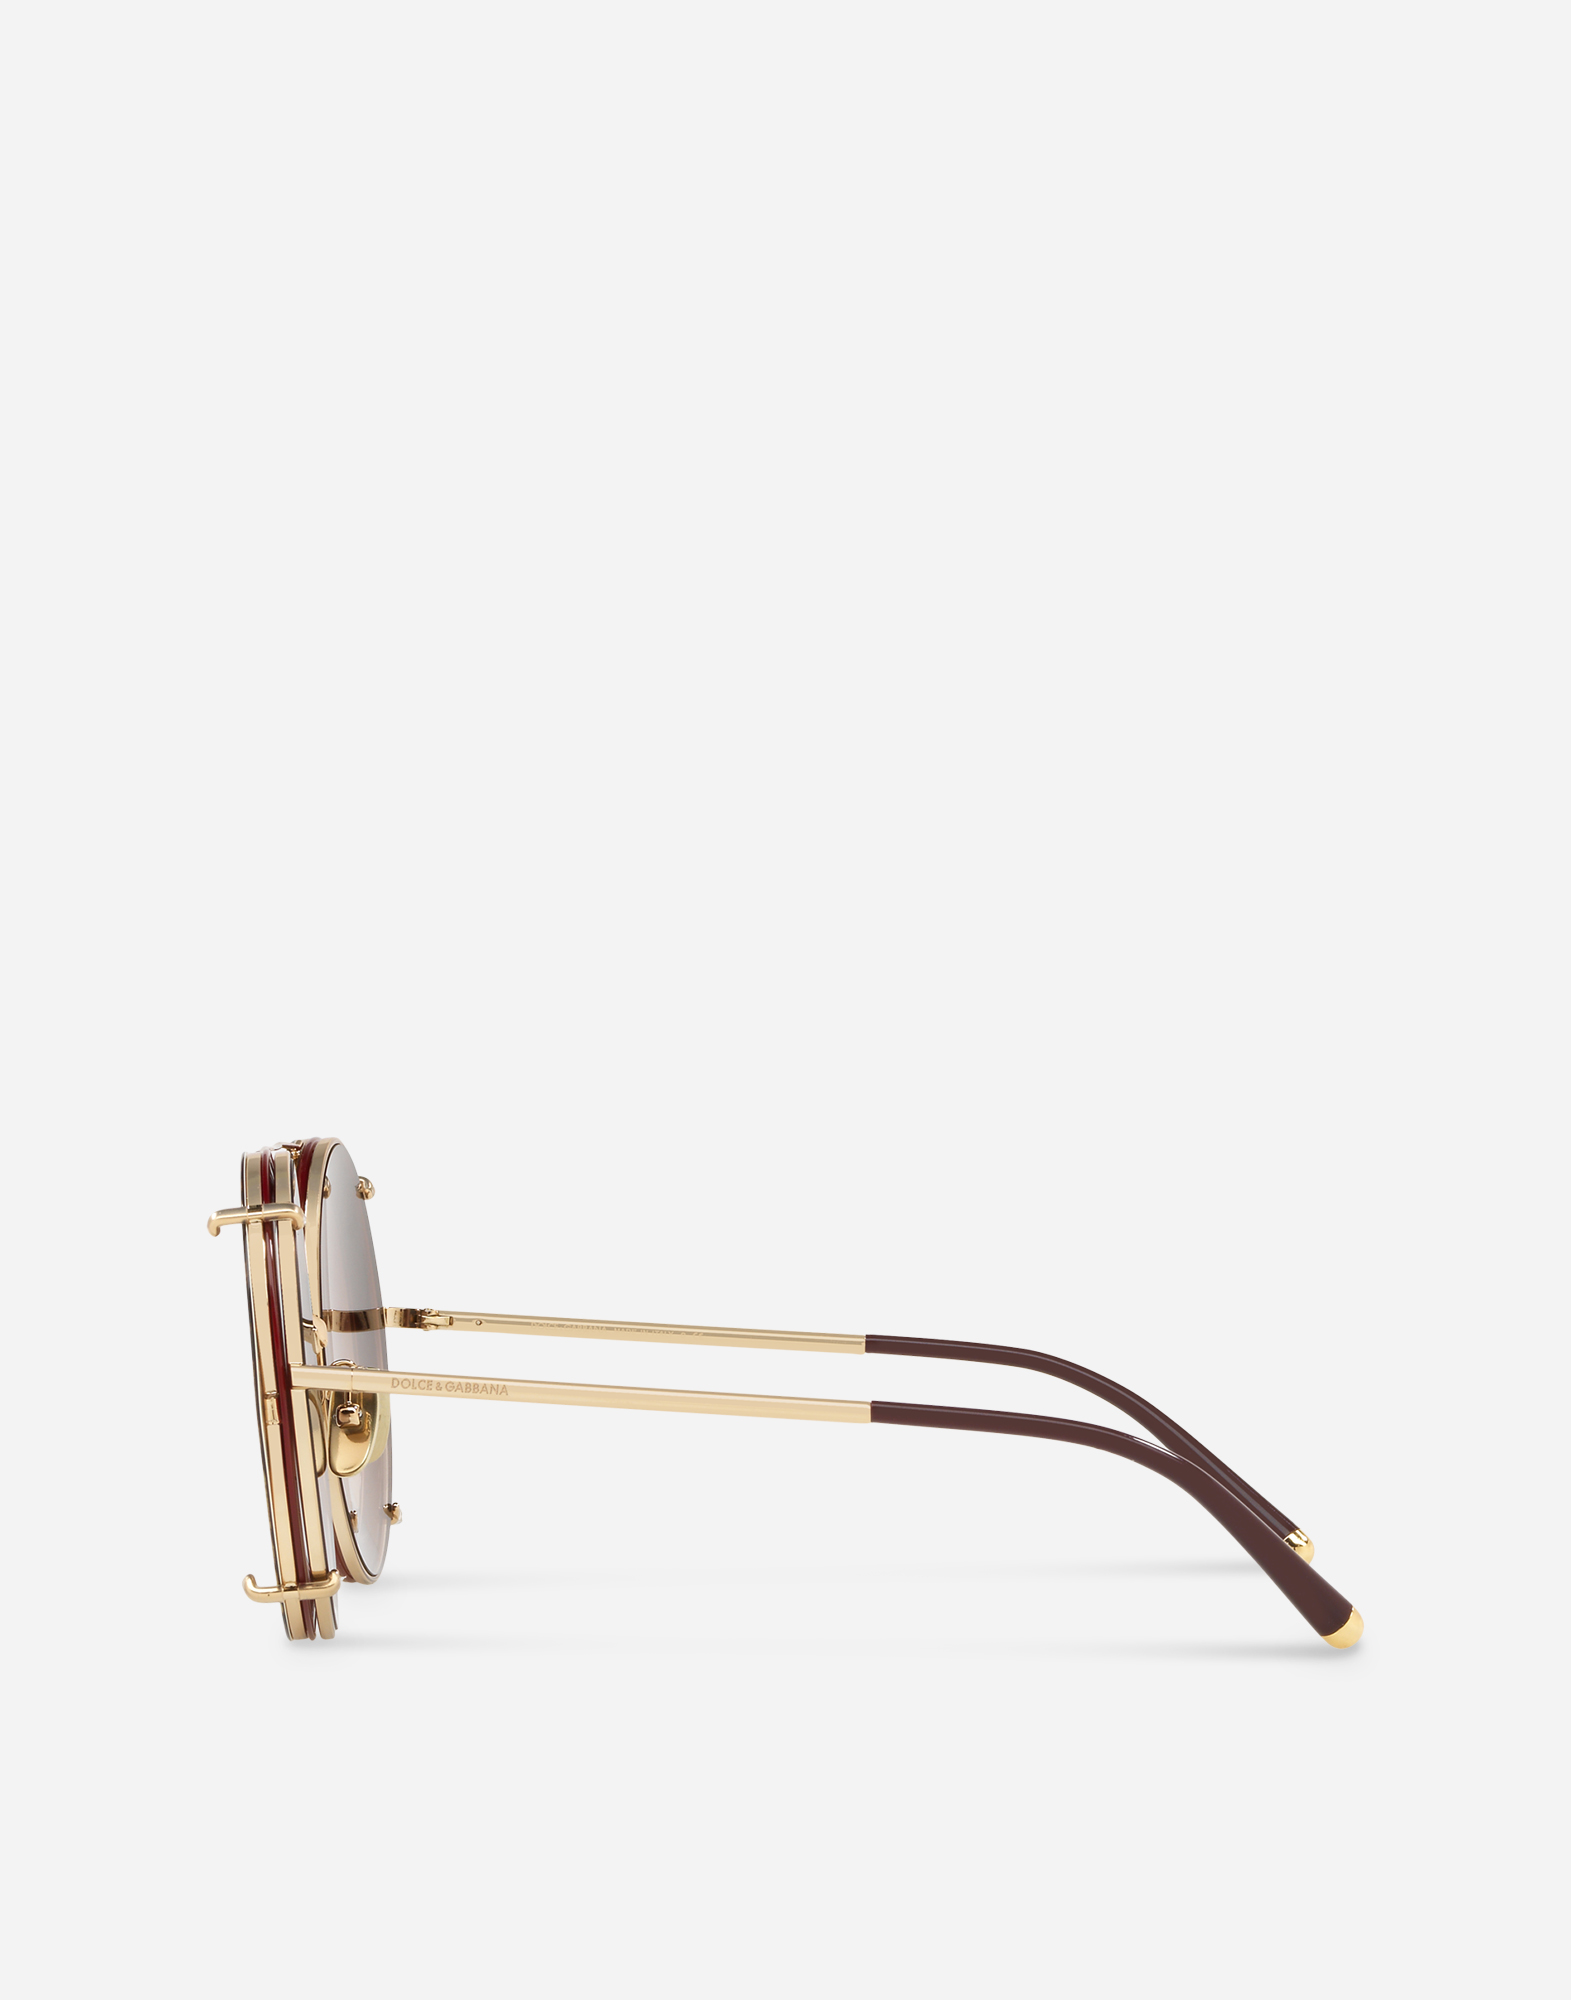 Dolce & Gabbana ROUND SUNGLASSES IN GOLD METAL WITH CLIP-ONS IN LEO PRINT